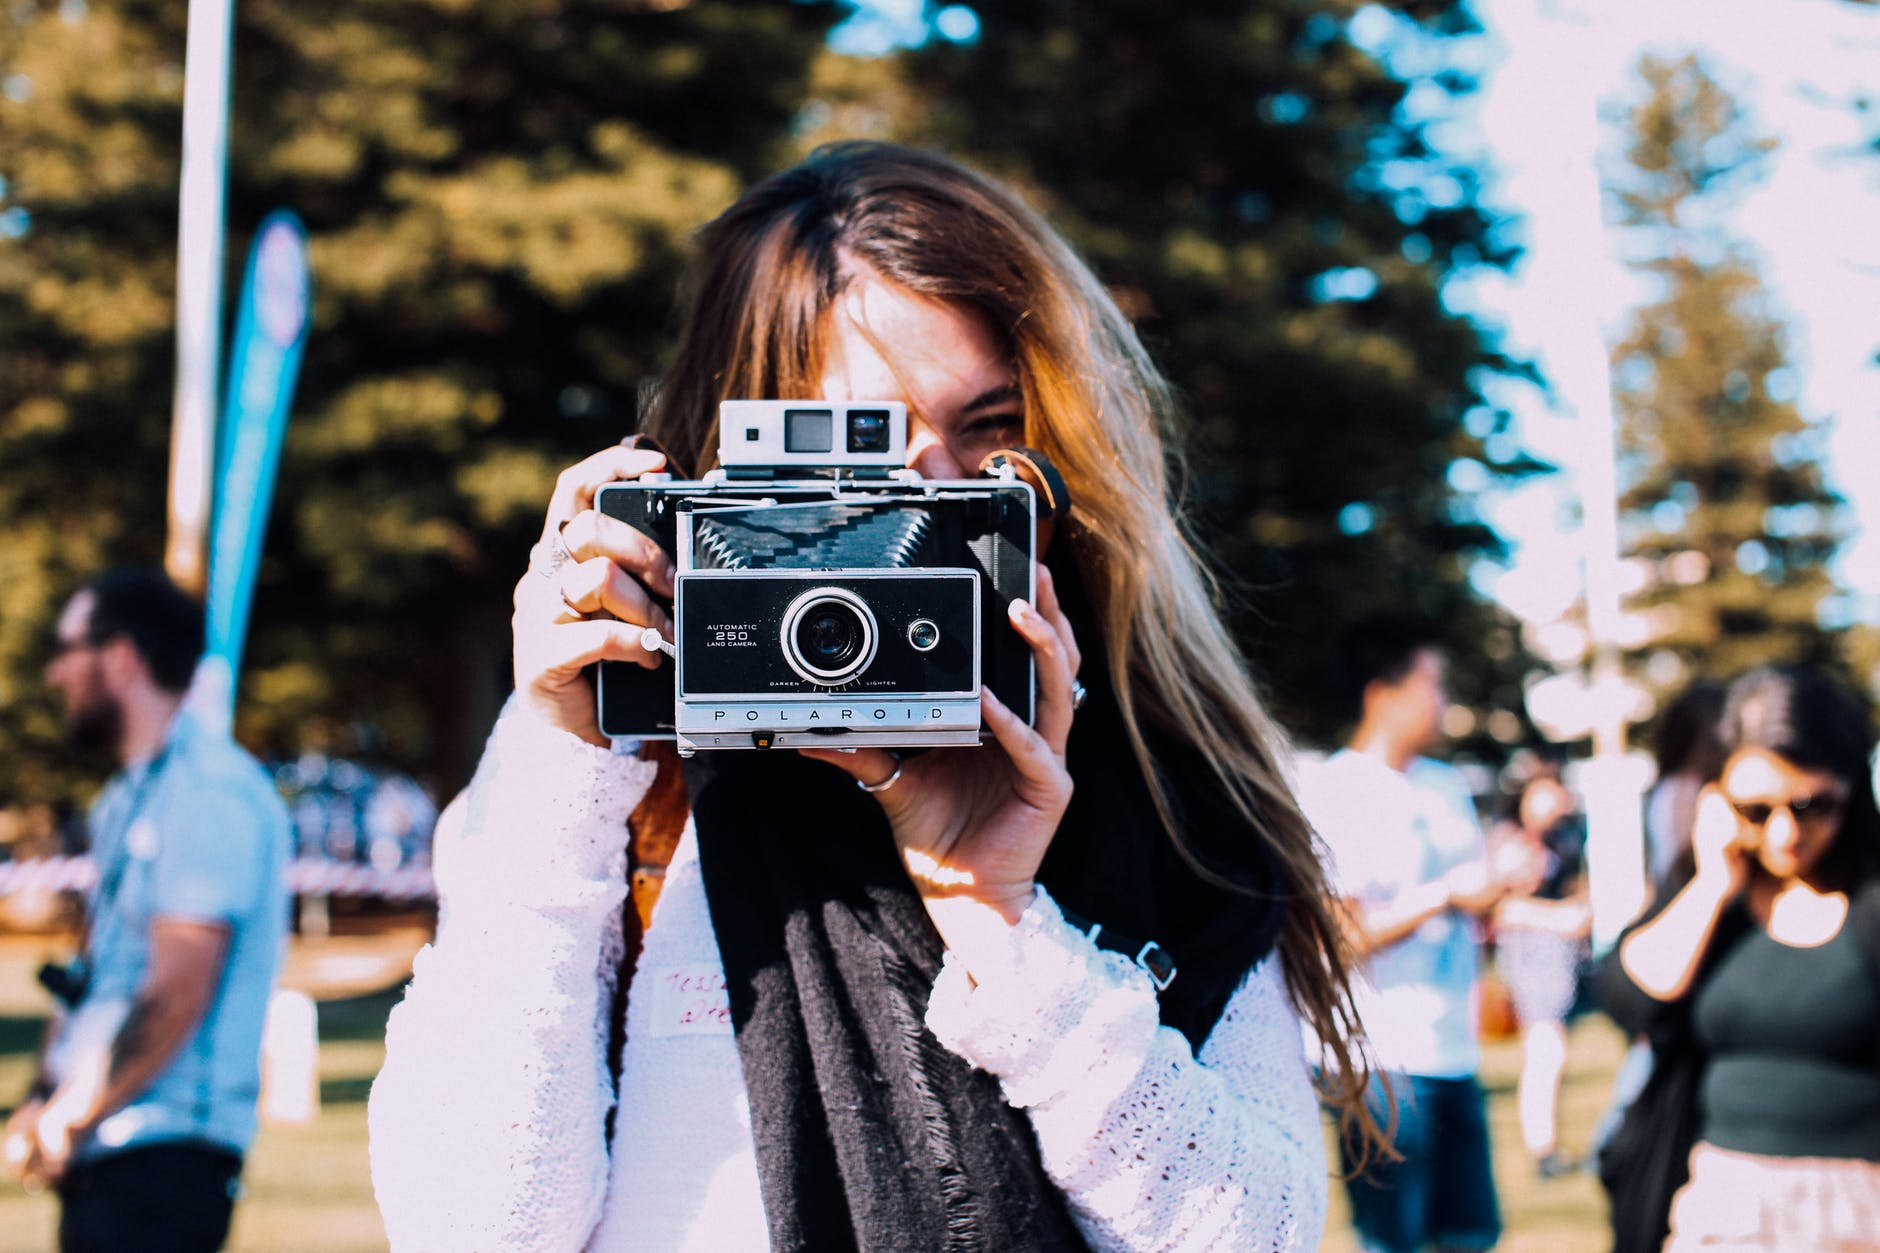 young woman taking photo on retro camera in crowded park